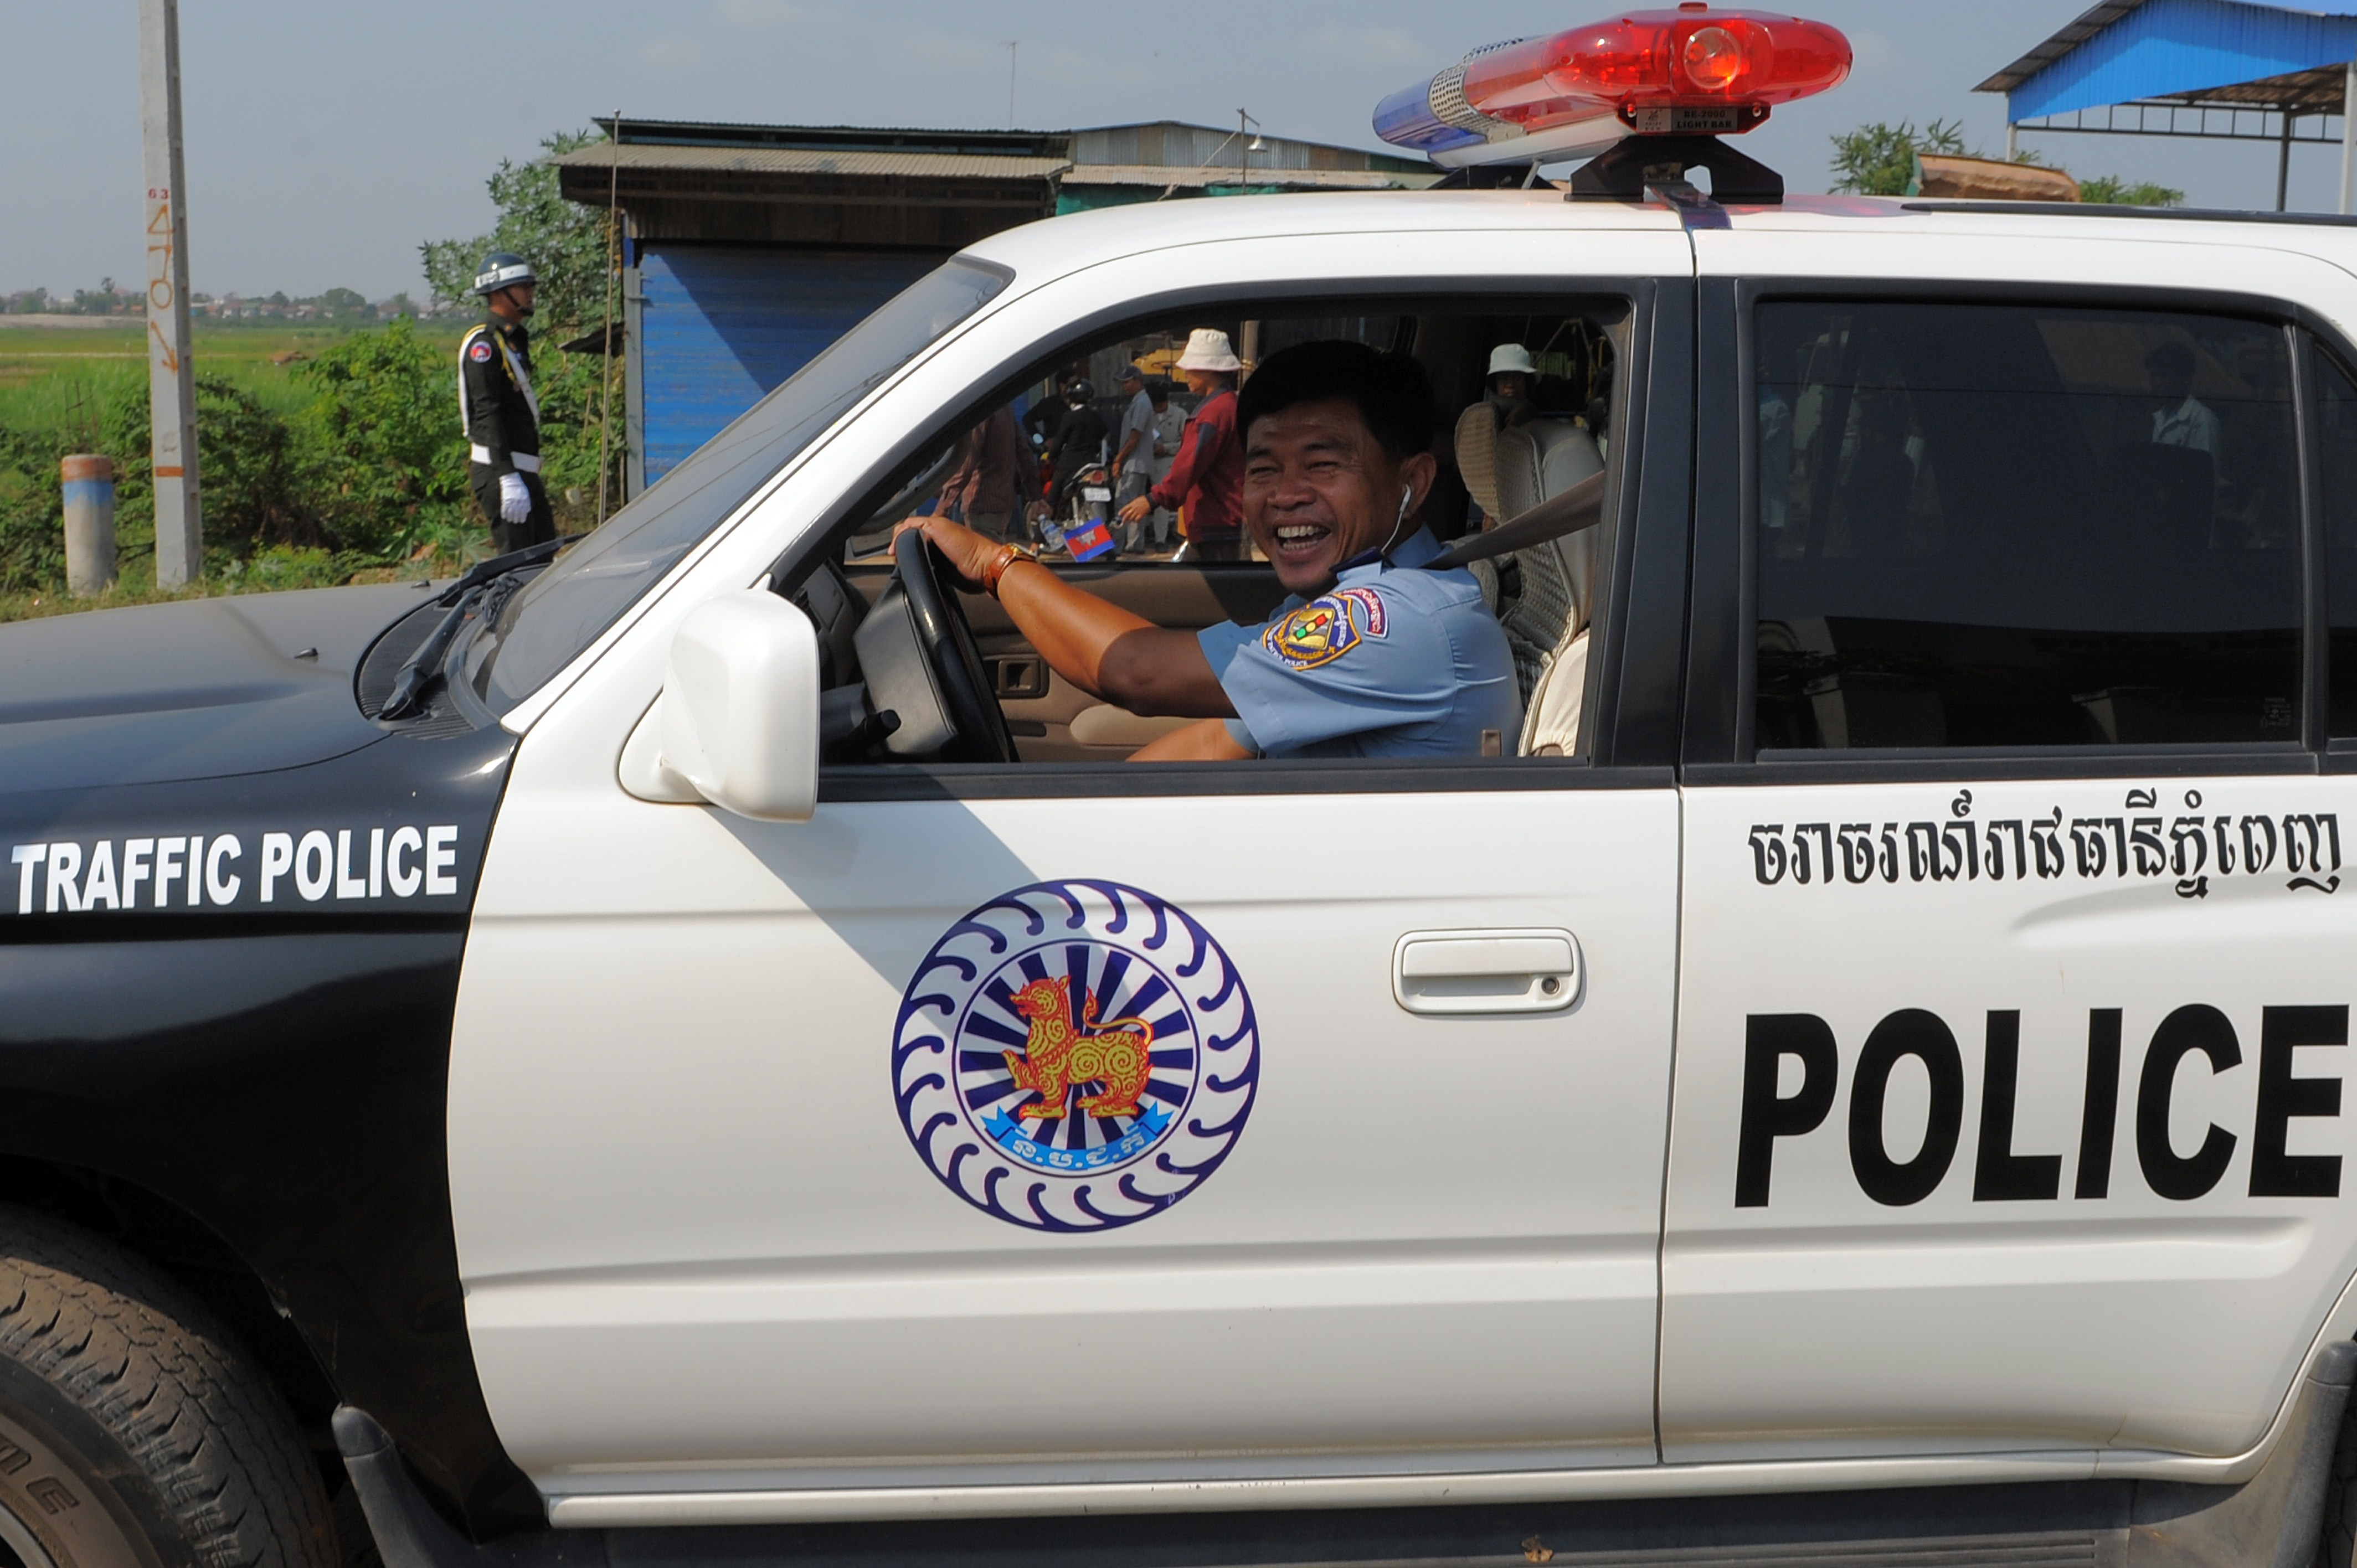 A Cambodian traffic police officer drives a car during a ceremony in Phnom Penh on Feb. 14, 2012